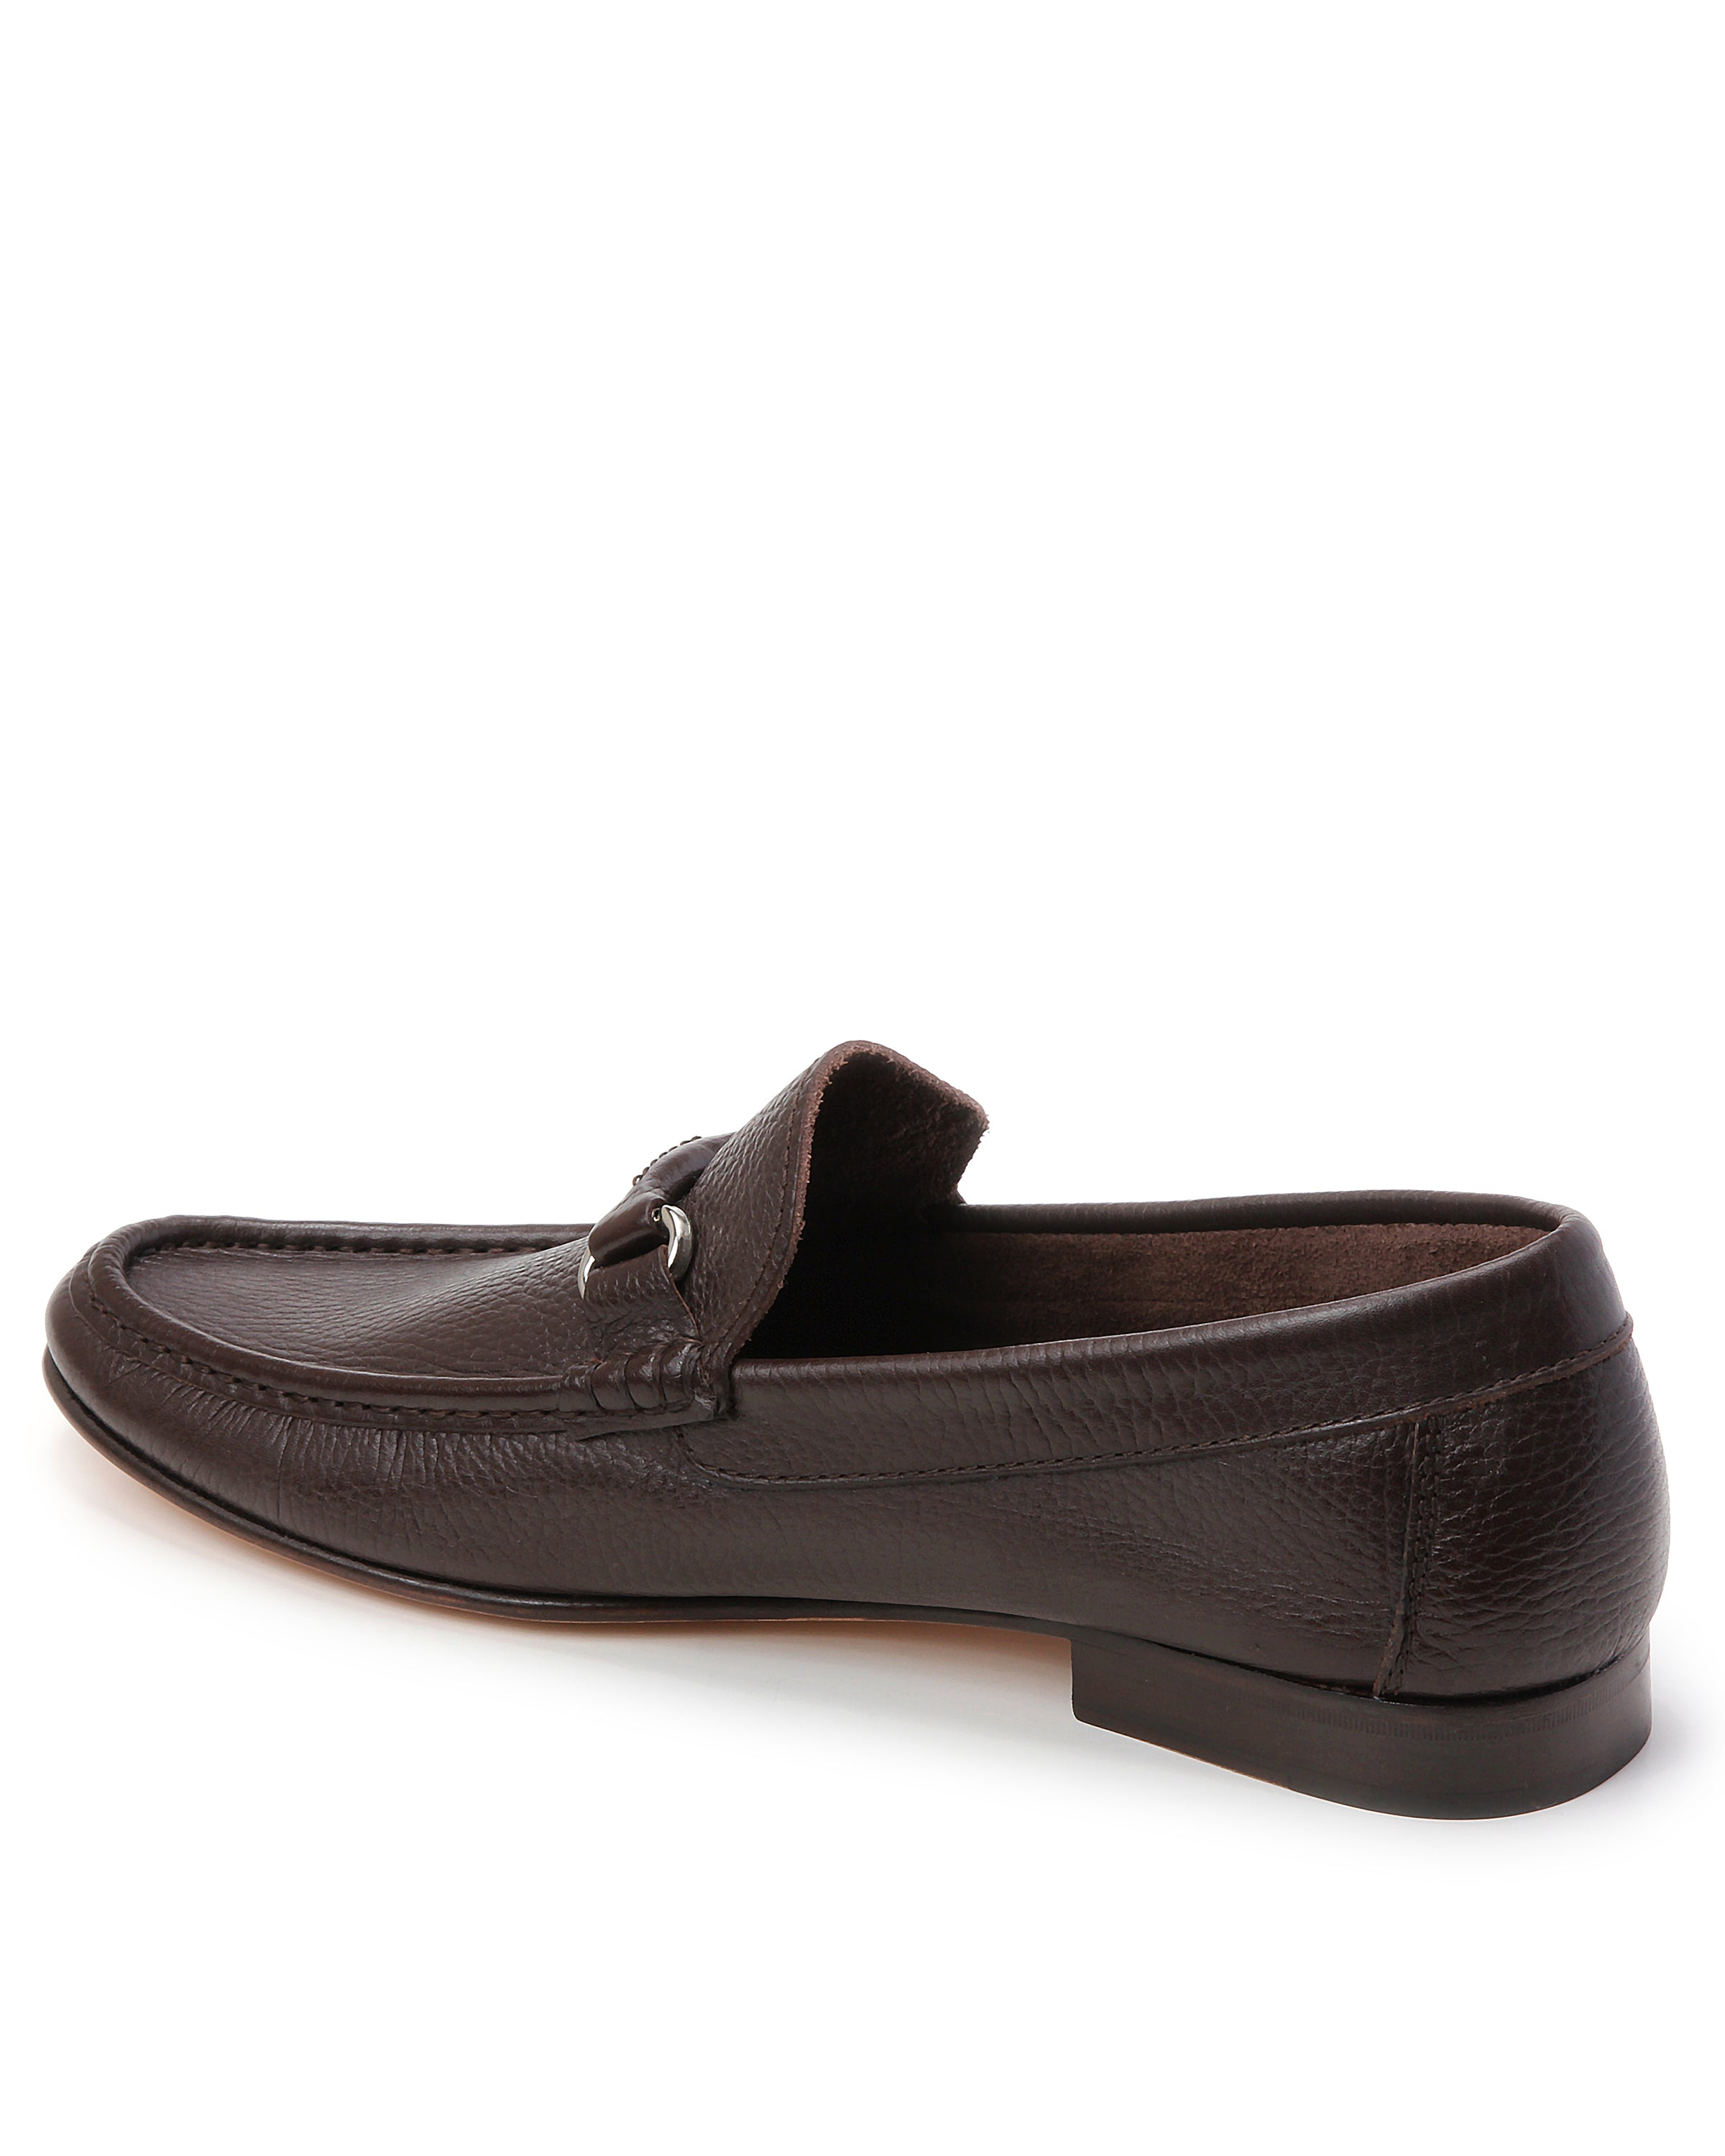 Marion Bit Loafer - Sandro Moscoloni